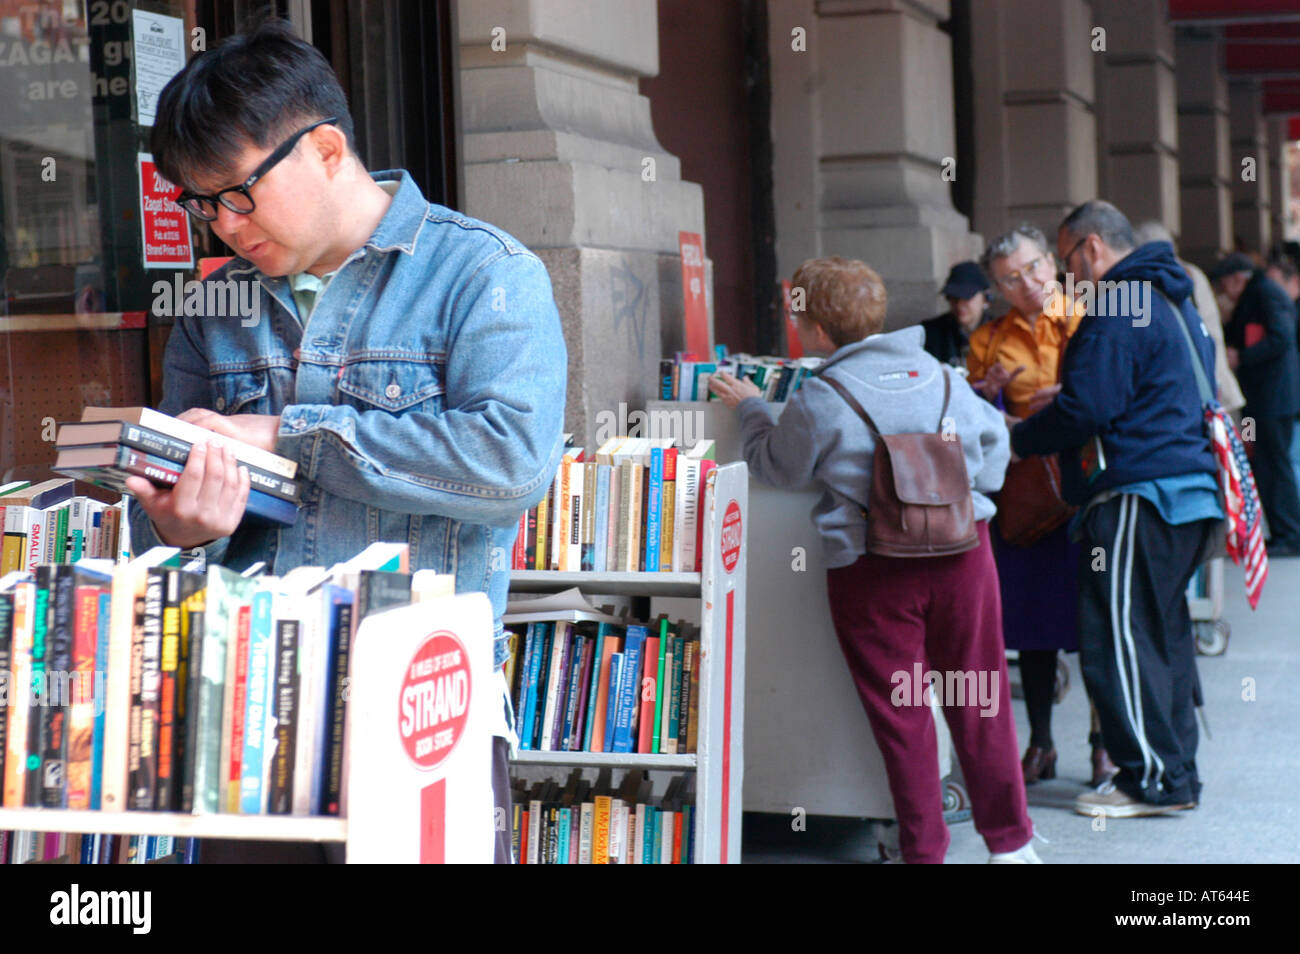 People browsing for books outside The Strand Bookstore  - Stock Image